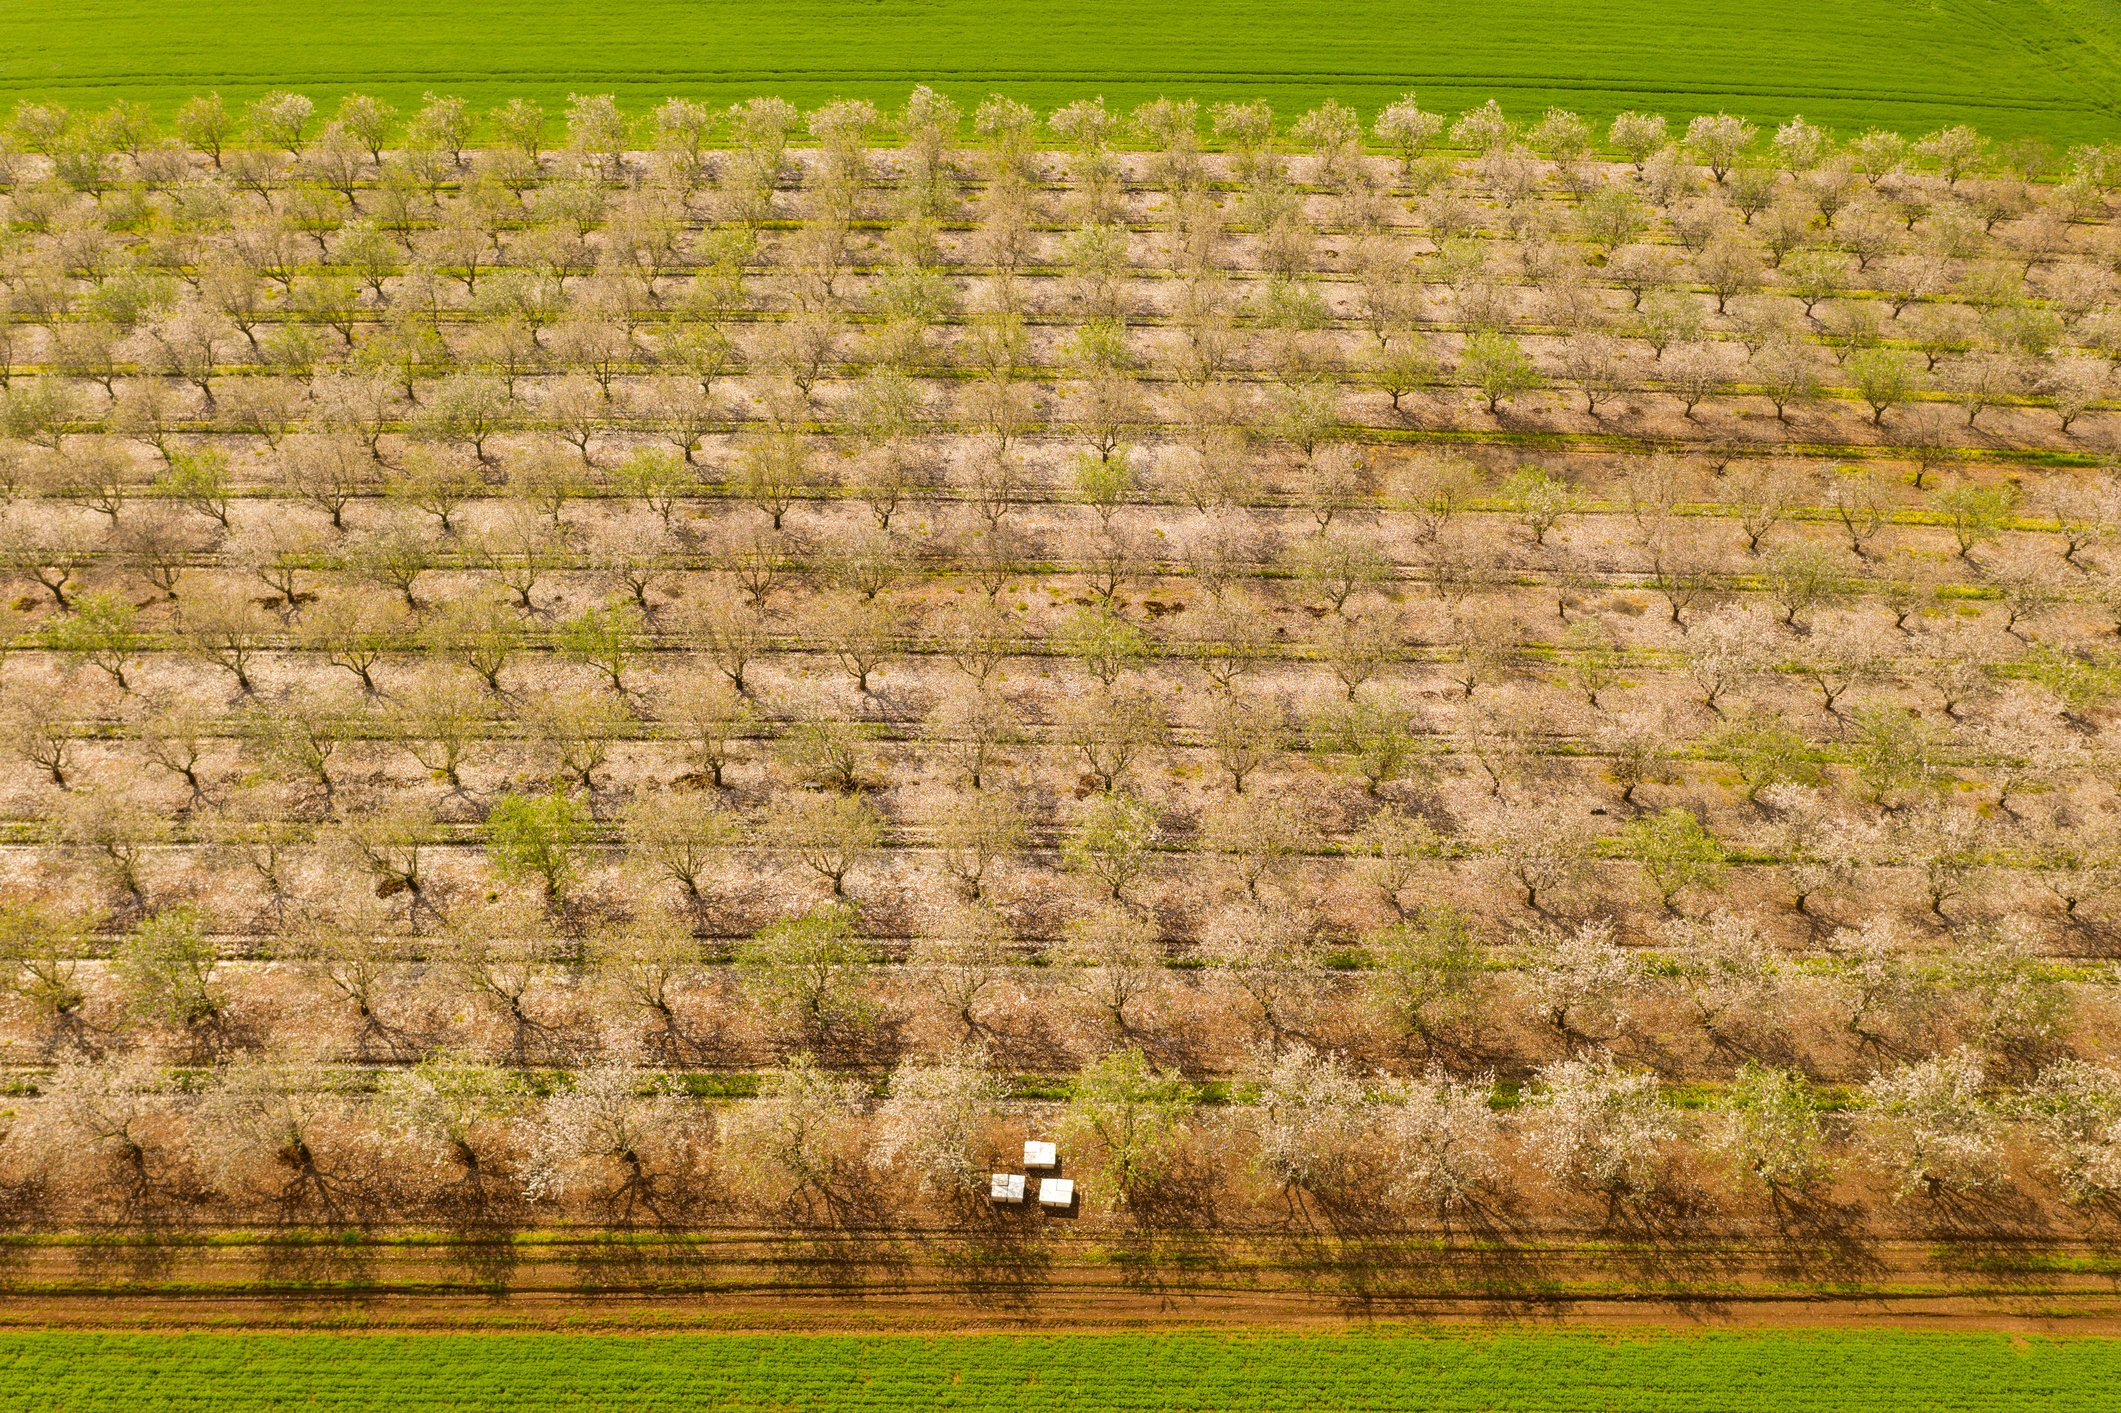 aerial almond orchard early spring